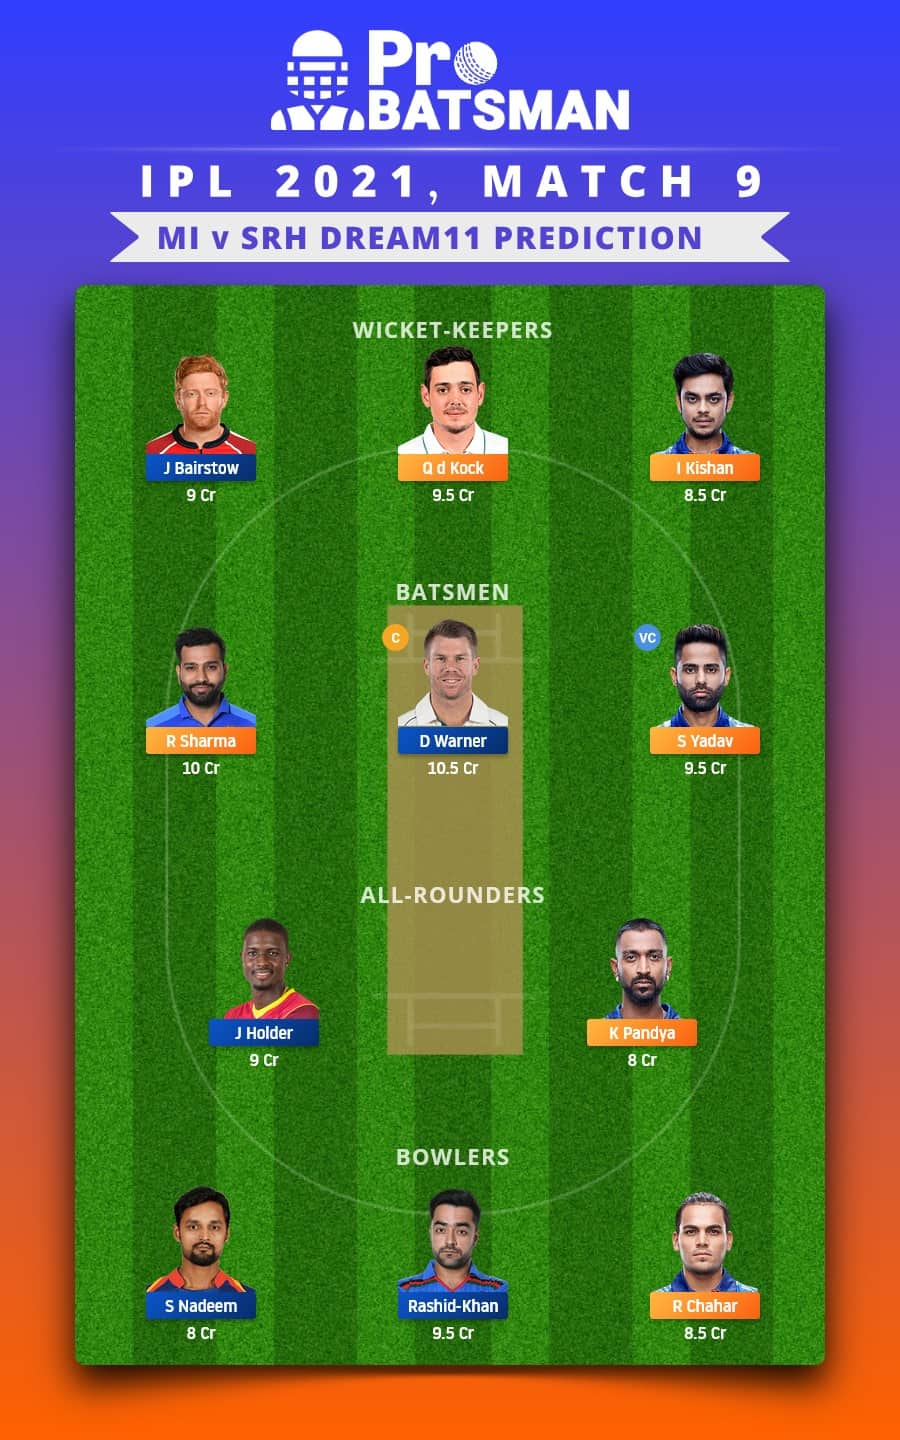 MI vs SRH Dream11 Fantasy Team Prediction